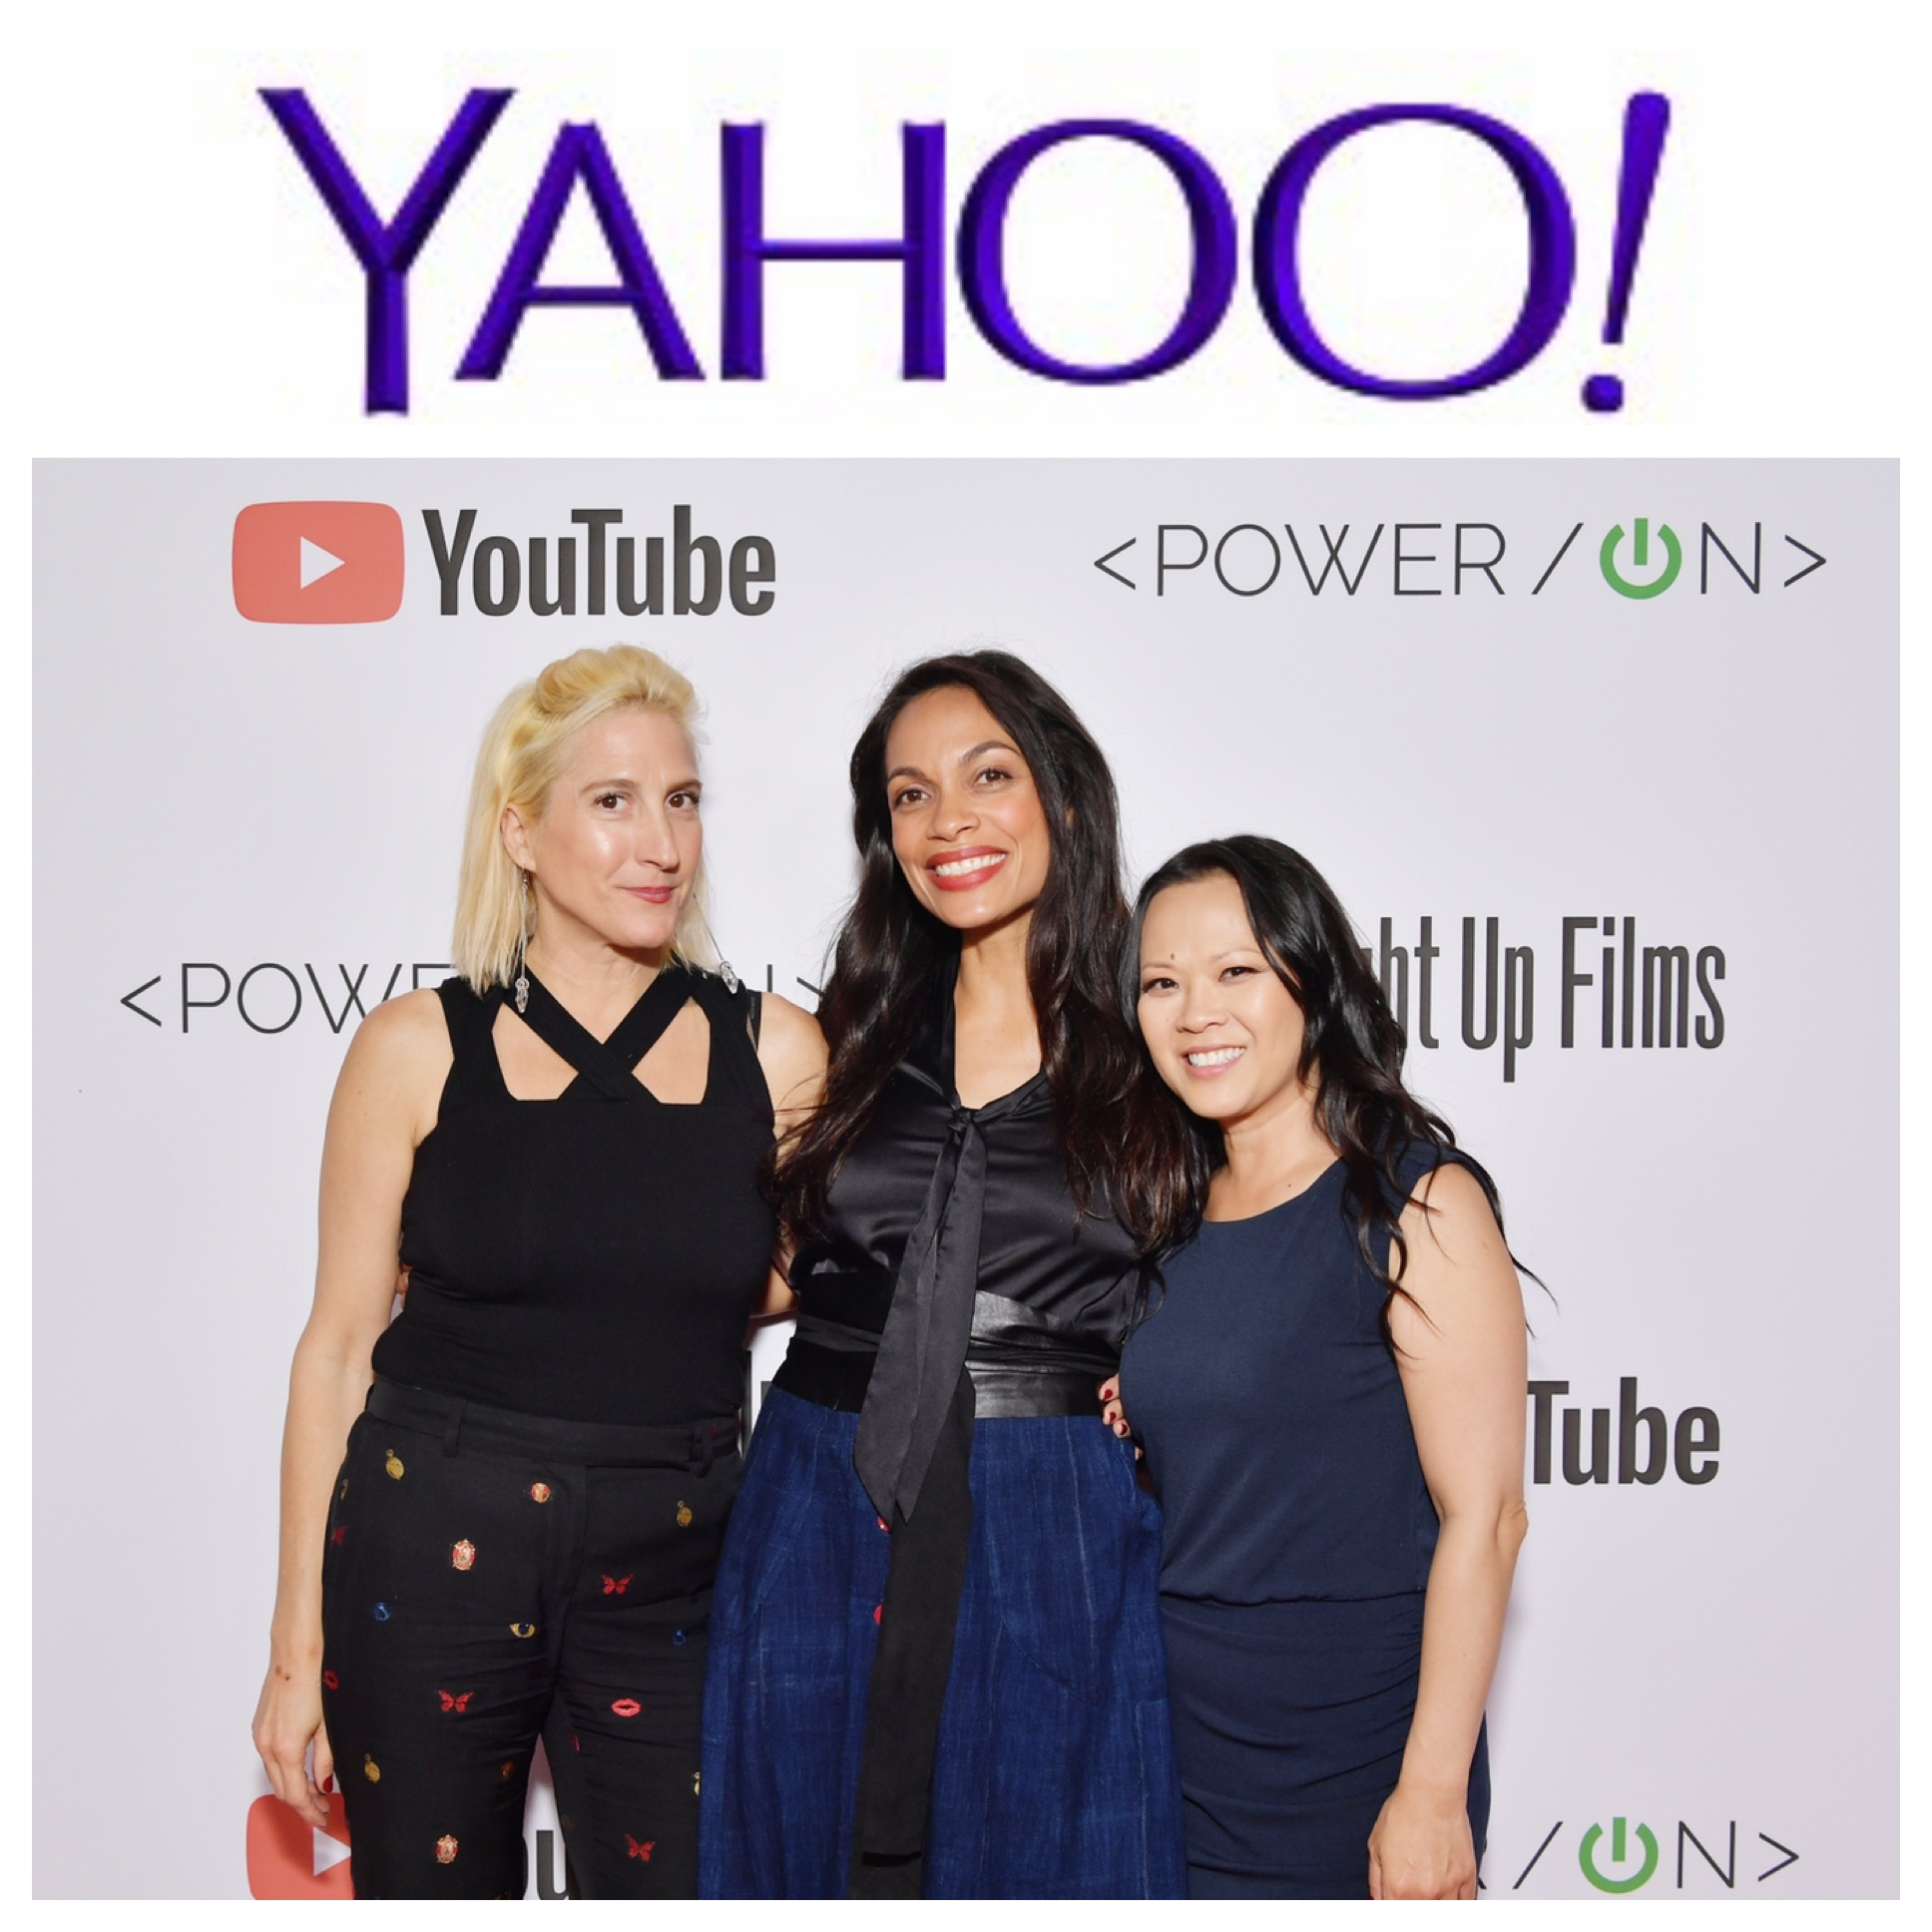 "- (Yahoo! Entertainment, April 25, 2019)Shorts Encourage Women to STEAM CareersStraight Up Films created the anthology ""Power/On"" of five shorts focused on encouraging girls in STEAM (science, technology, engineering arts and math) directed by actresses Rosario Dawson, Julie Bowen, Ana Brenda Contreras, Lisa Edelstein, and Nikki Reed. Pictured; Producers Marisa Polvino and Ngoc Nguyen here with Director Rosario Dawson. (Full Article.)"